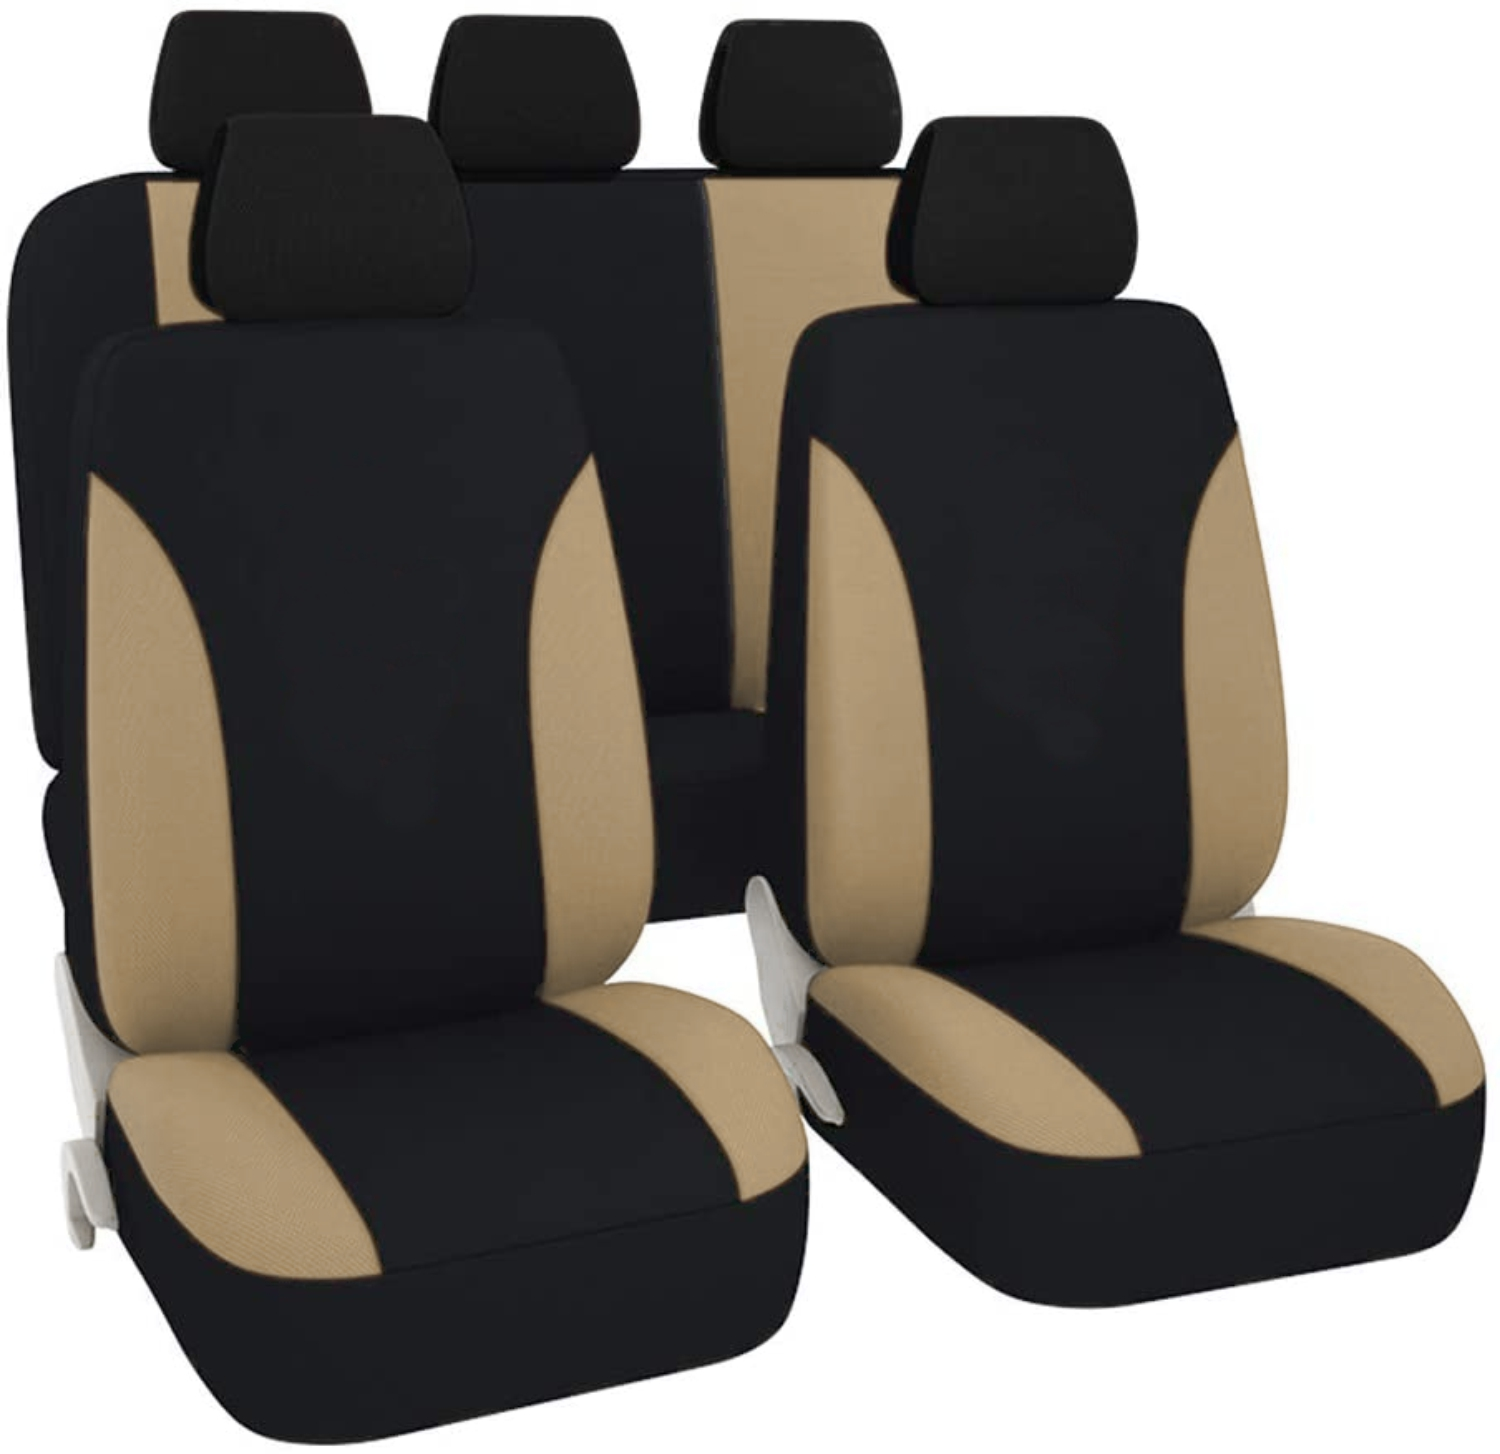 SB102 - Car Seat Cover set protector with SIDE AIRBAG BLACK / BEIGE